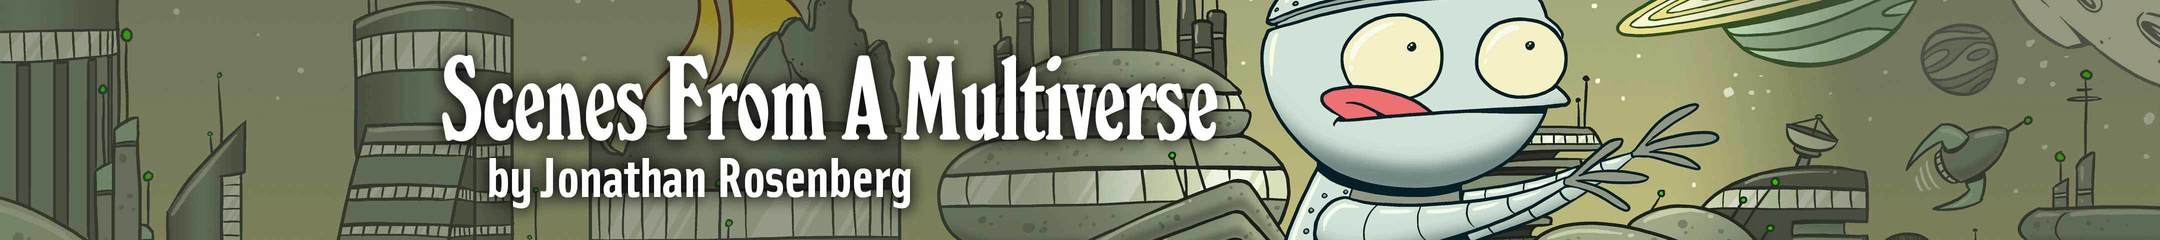 Scenes from a Multiverse